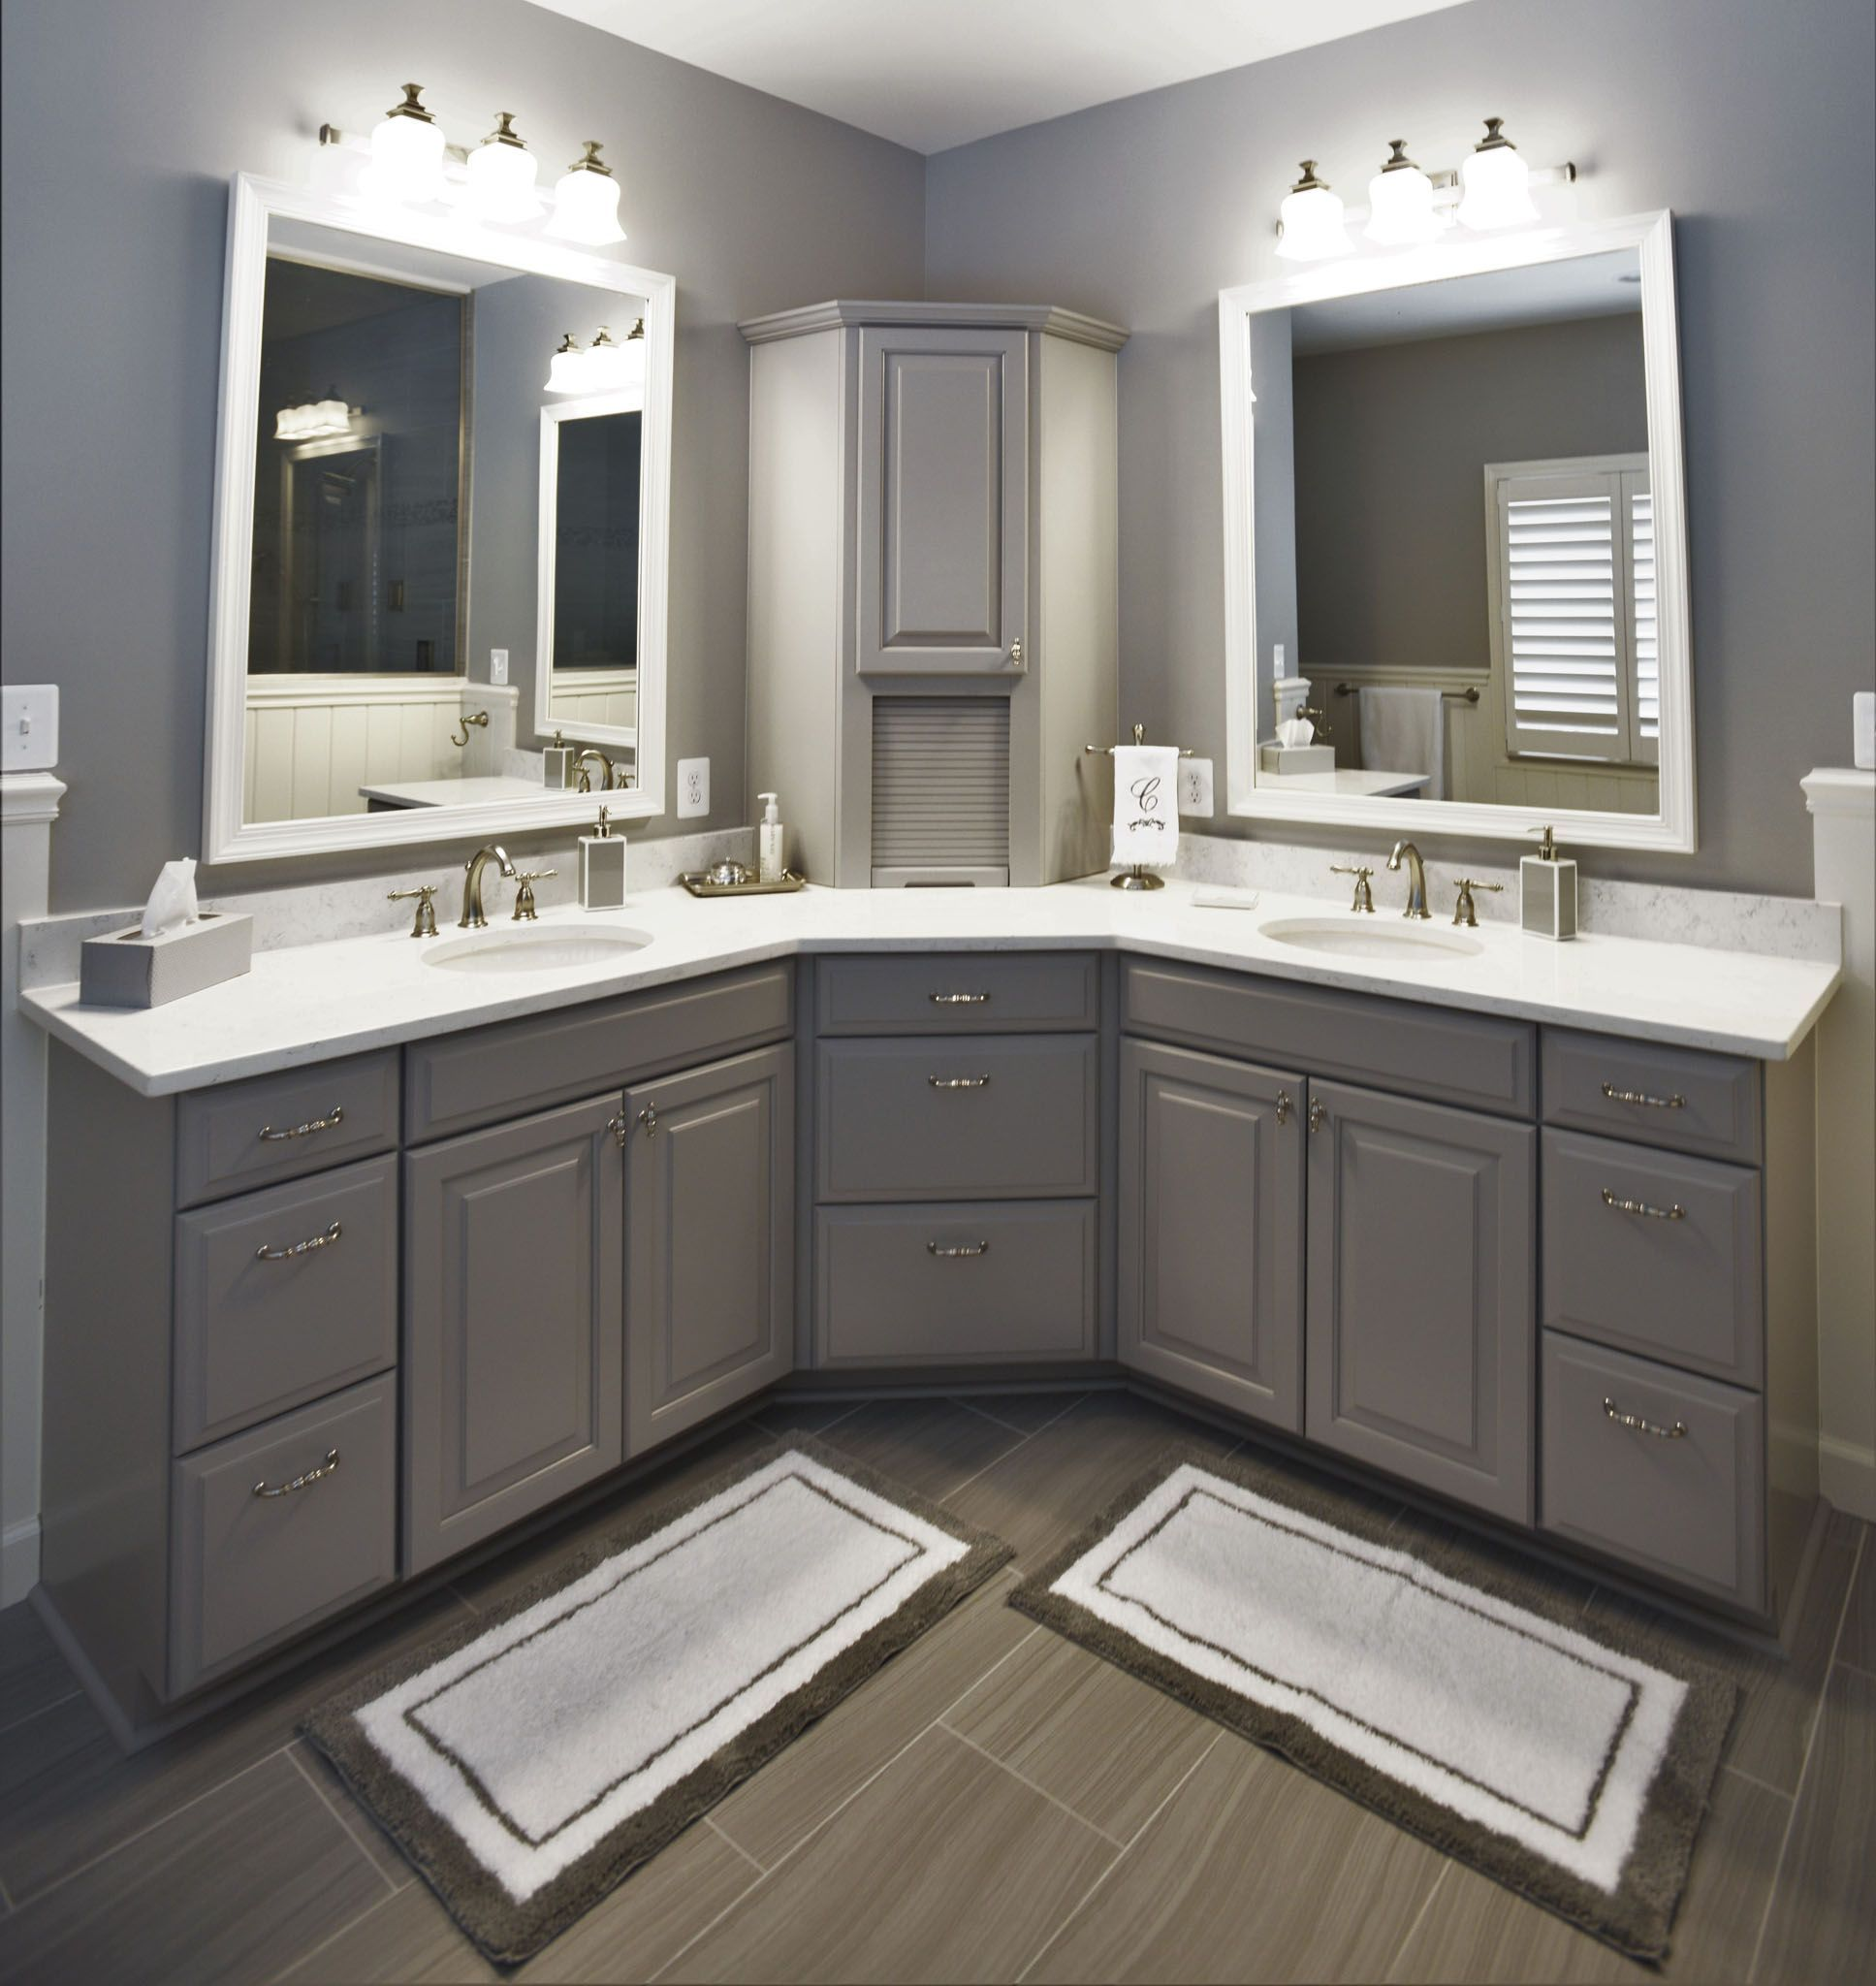 This Large Corner Vanity Has Striking Features With Double Mirrors And Sinks Beautiful Cab Corner Bathroom Vanity Bathroom Countertops Bathroom Remodel Master